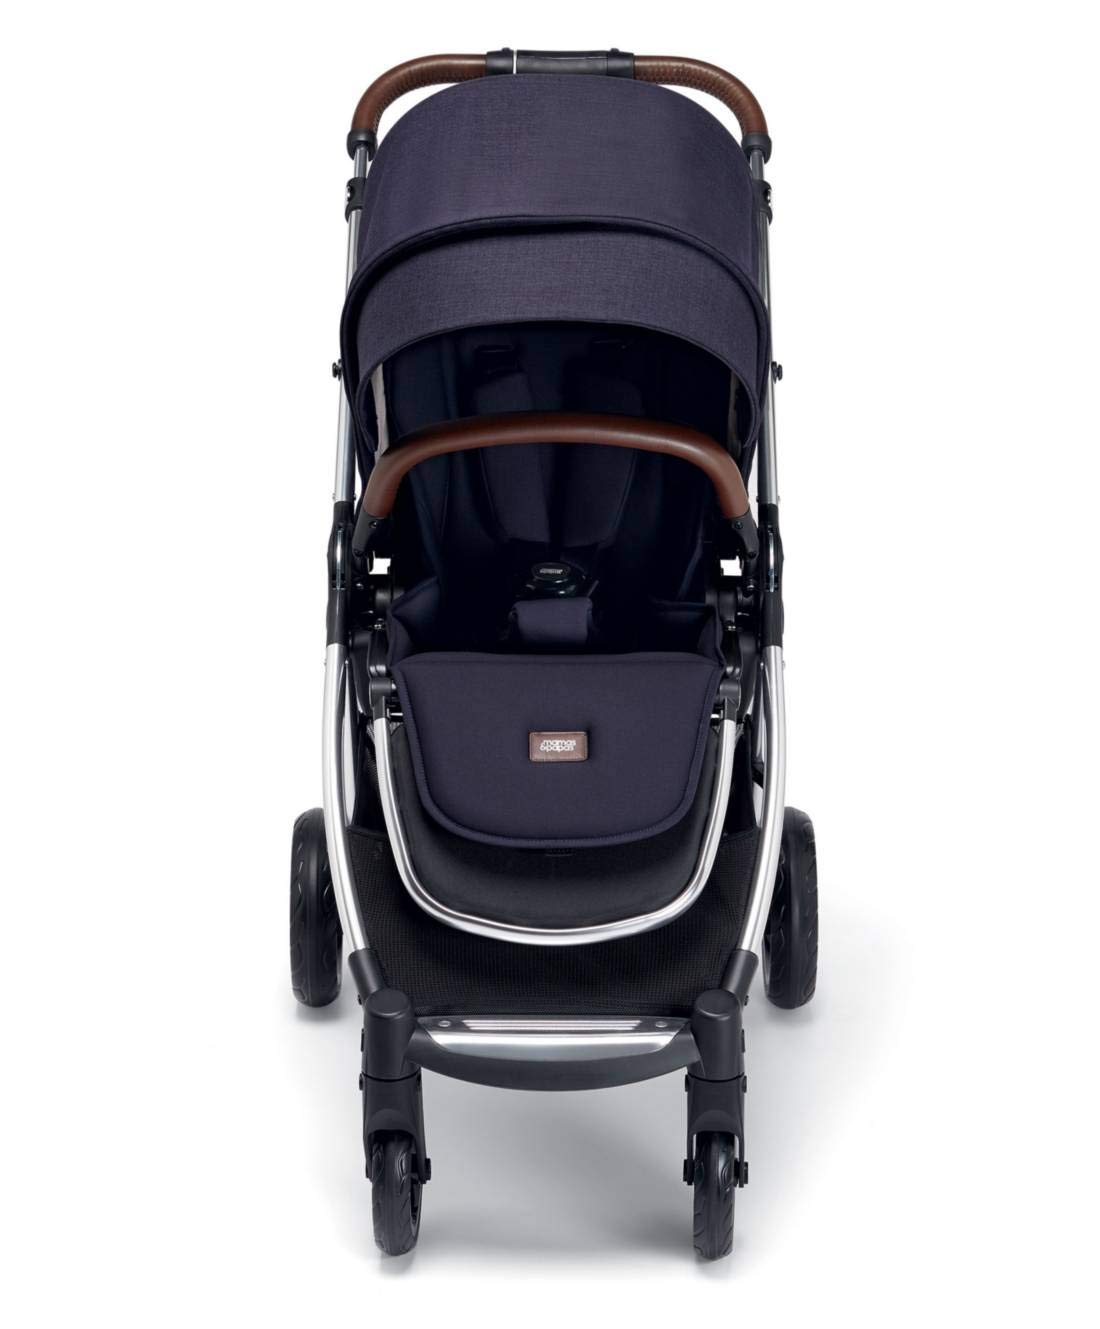 Mamas & Papas Flip XT3 Pushchair - Dark Navy Mamas & Papas PUSHCHAIR - Our lightweight Flip XT3 pushchair is perfect for handling busy streets FOLDABLE - This pushchair can be stored away quick and compact with the easy one handed fold FEATURES - The lie-flat position supports natural, healthy sleep while the UPF 50+ large hood & air vent provides cooling protection from the sun 4